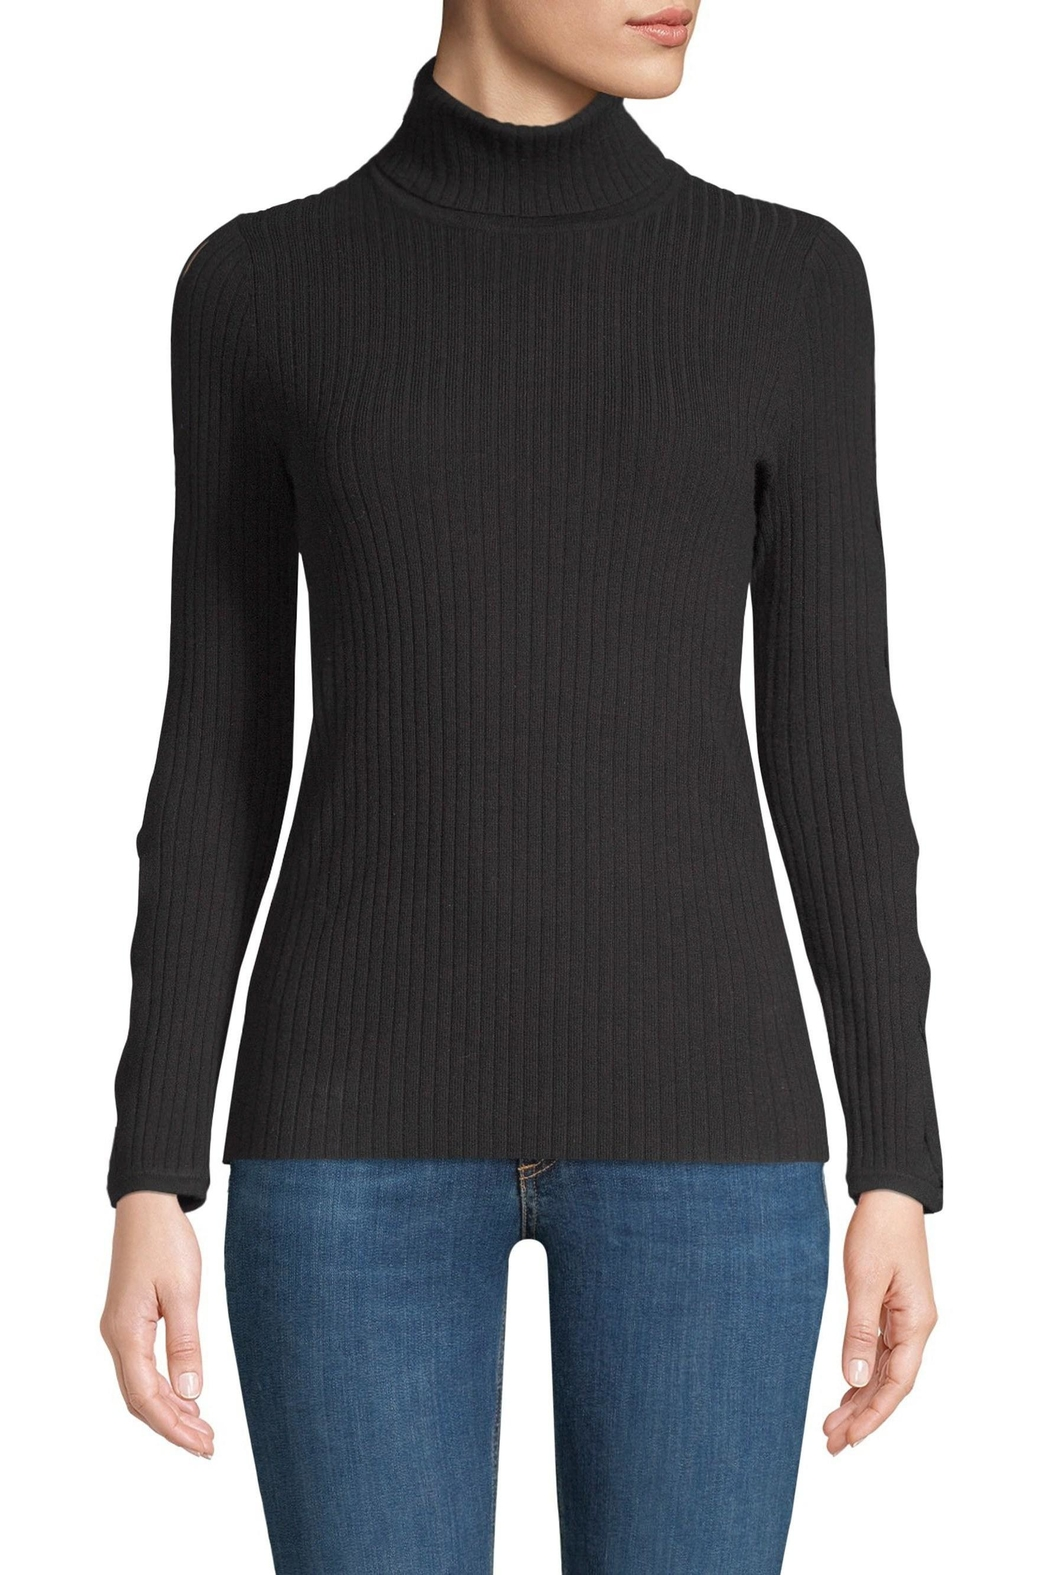 Ramy Brook Kimila Sweater - Front Full Image